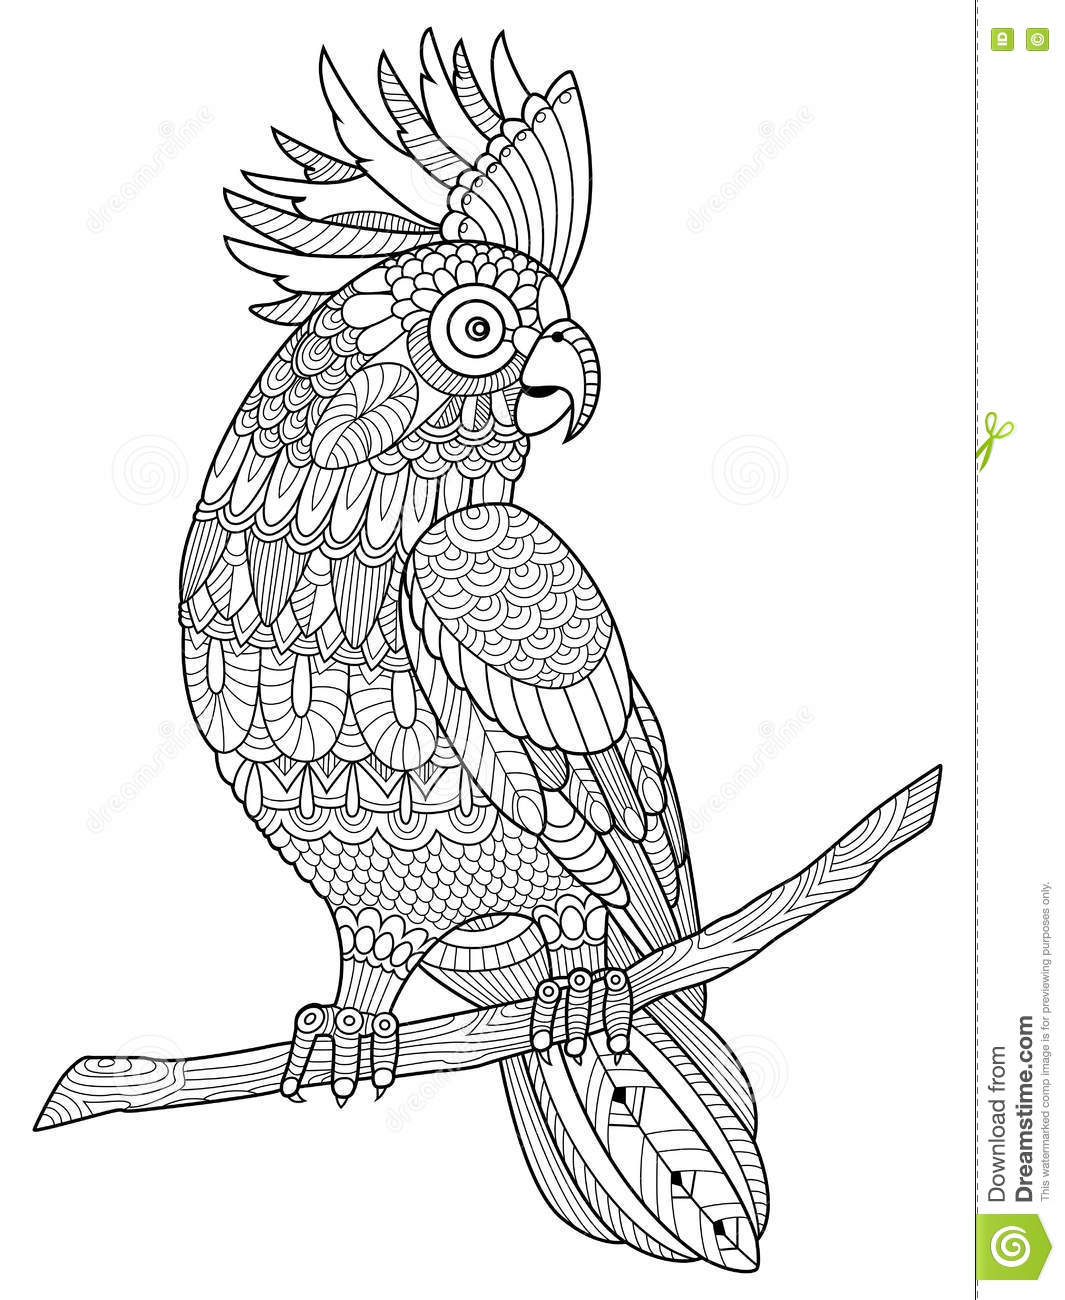 parrot coloring vector for adults vector illustration